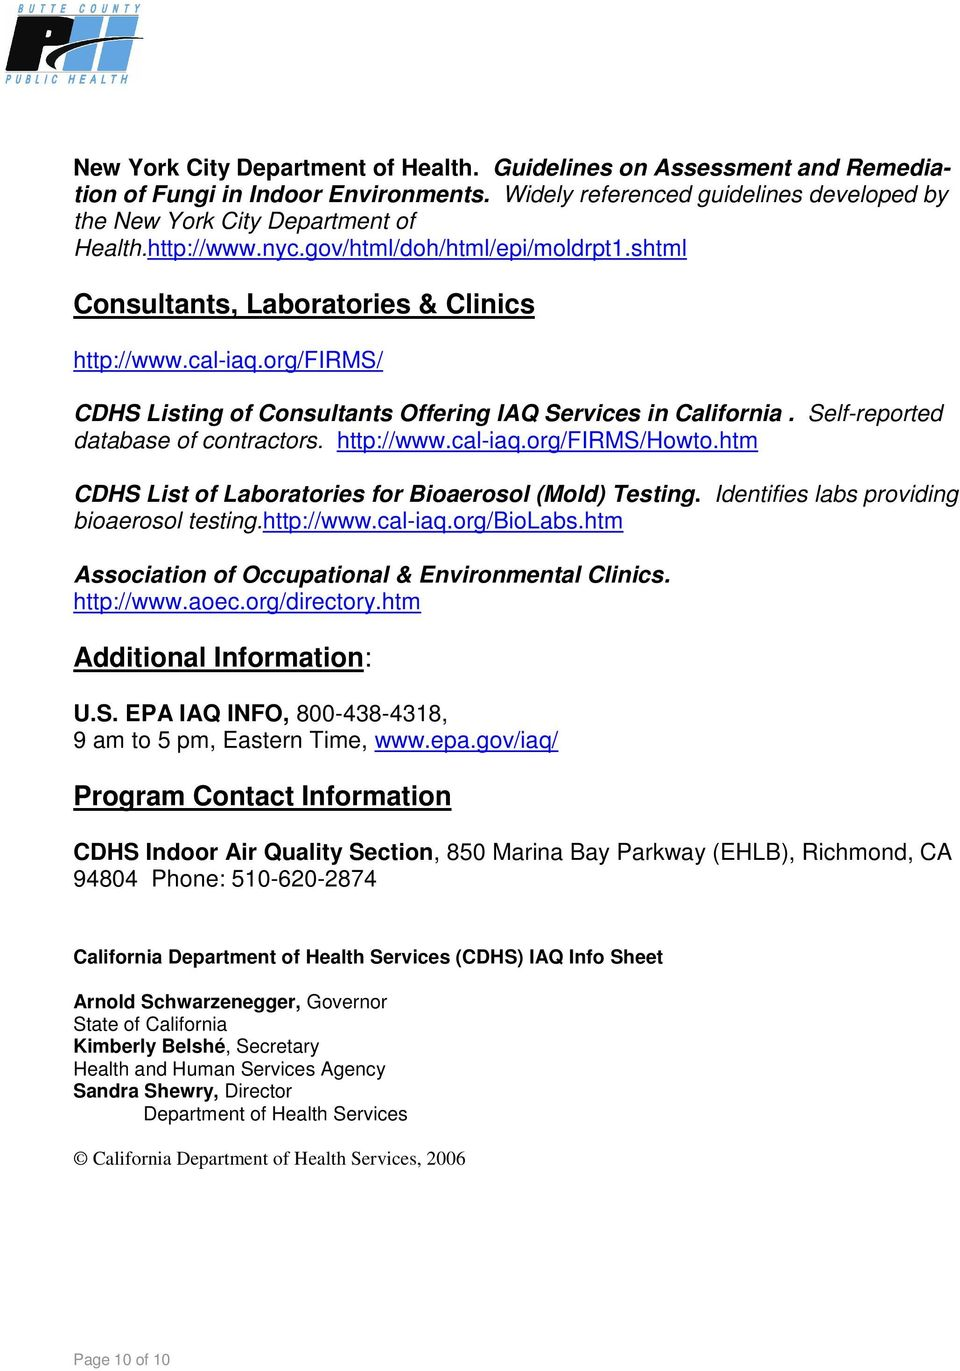 Self-reported database of contractors. http://www.cal-iaq.org/firms/howto.htm CDHS List of Laboratories for Bioaerosol (Mold) Testing. Identifies labs providing bioaerosol testing.http://www.cal-iaq.org/biolabs.